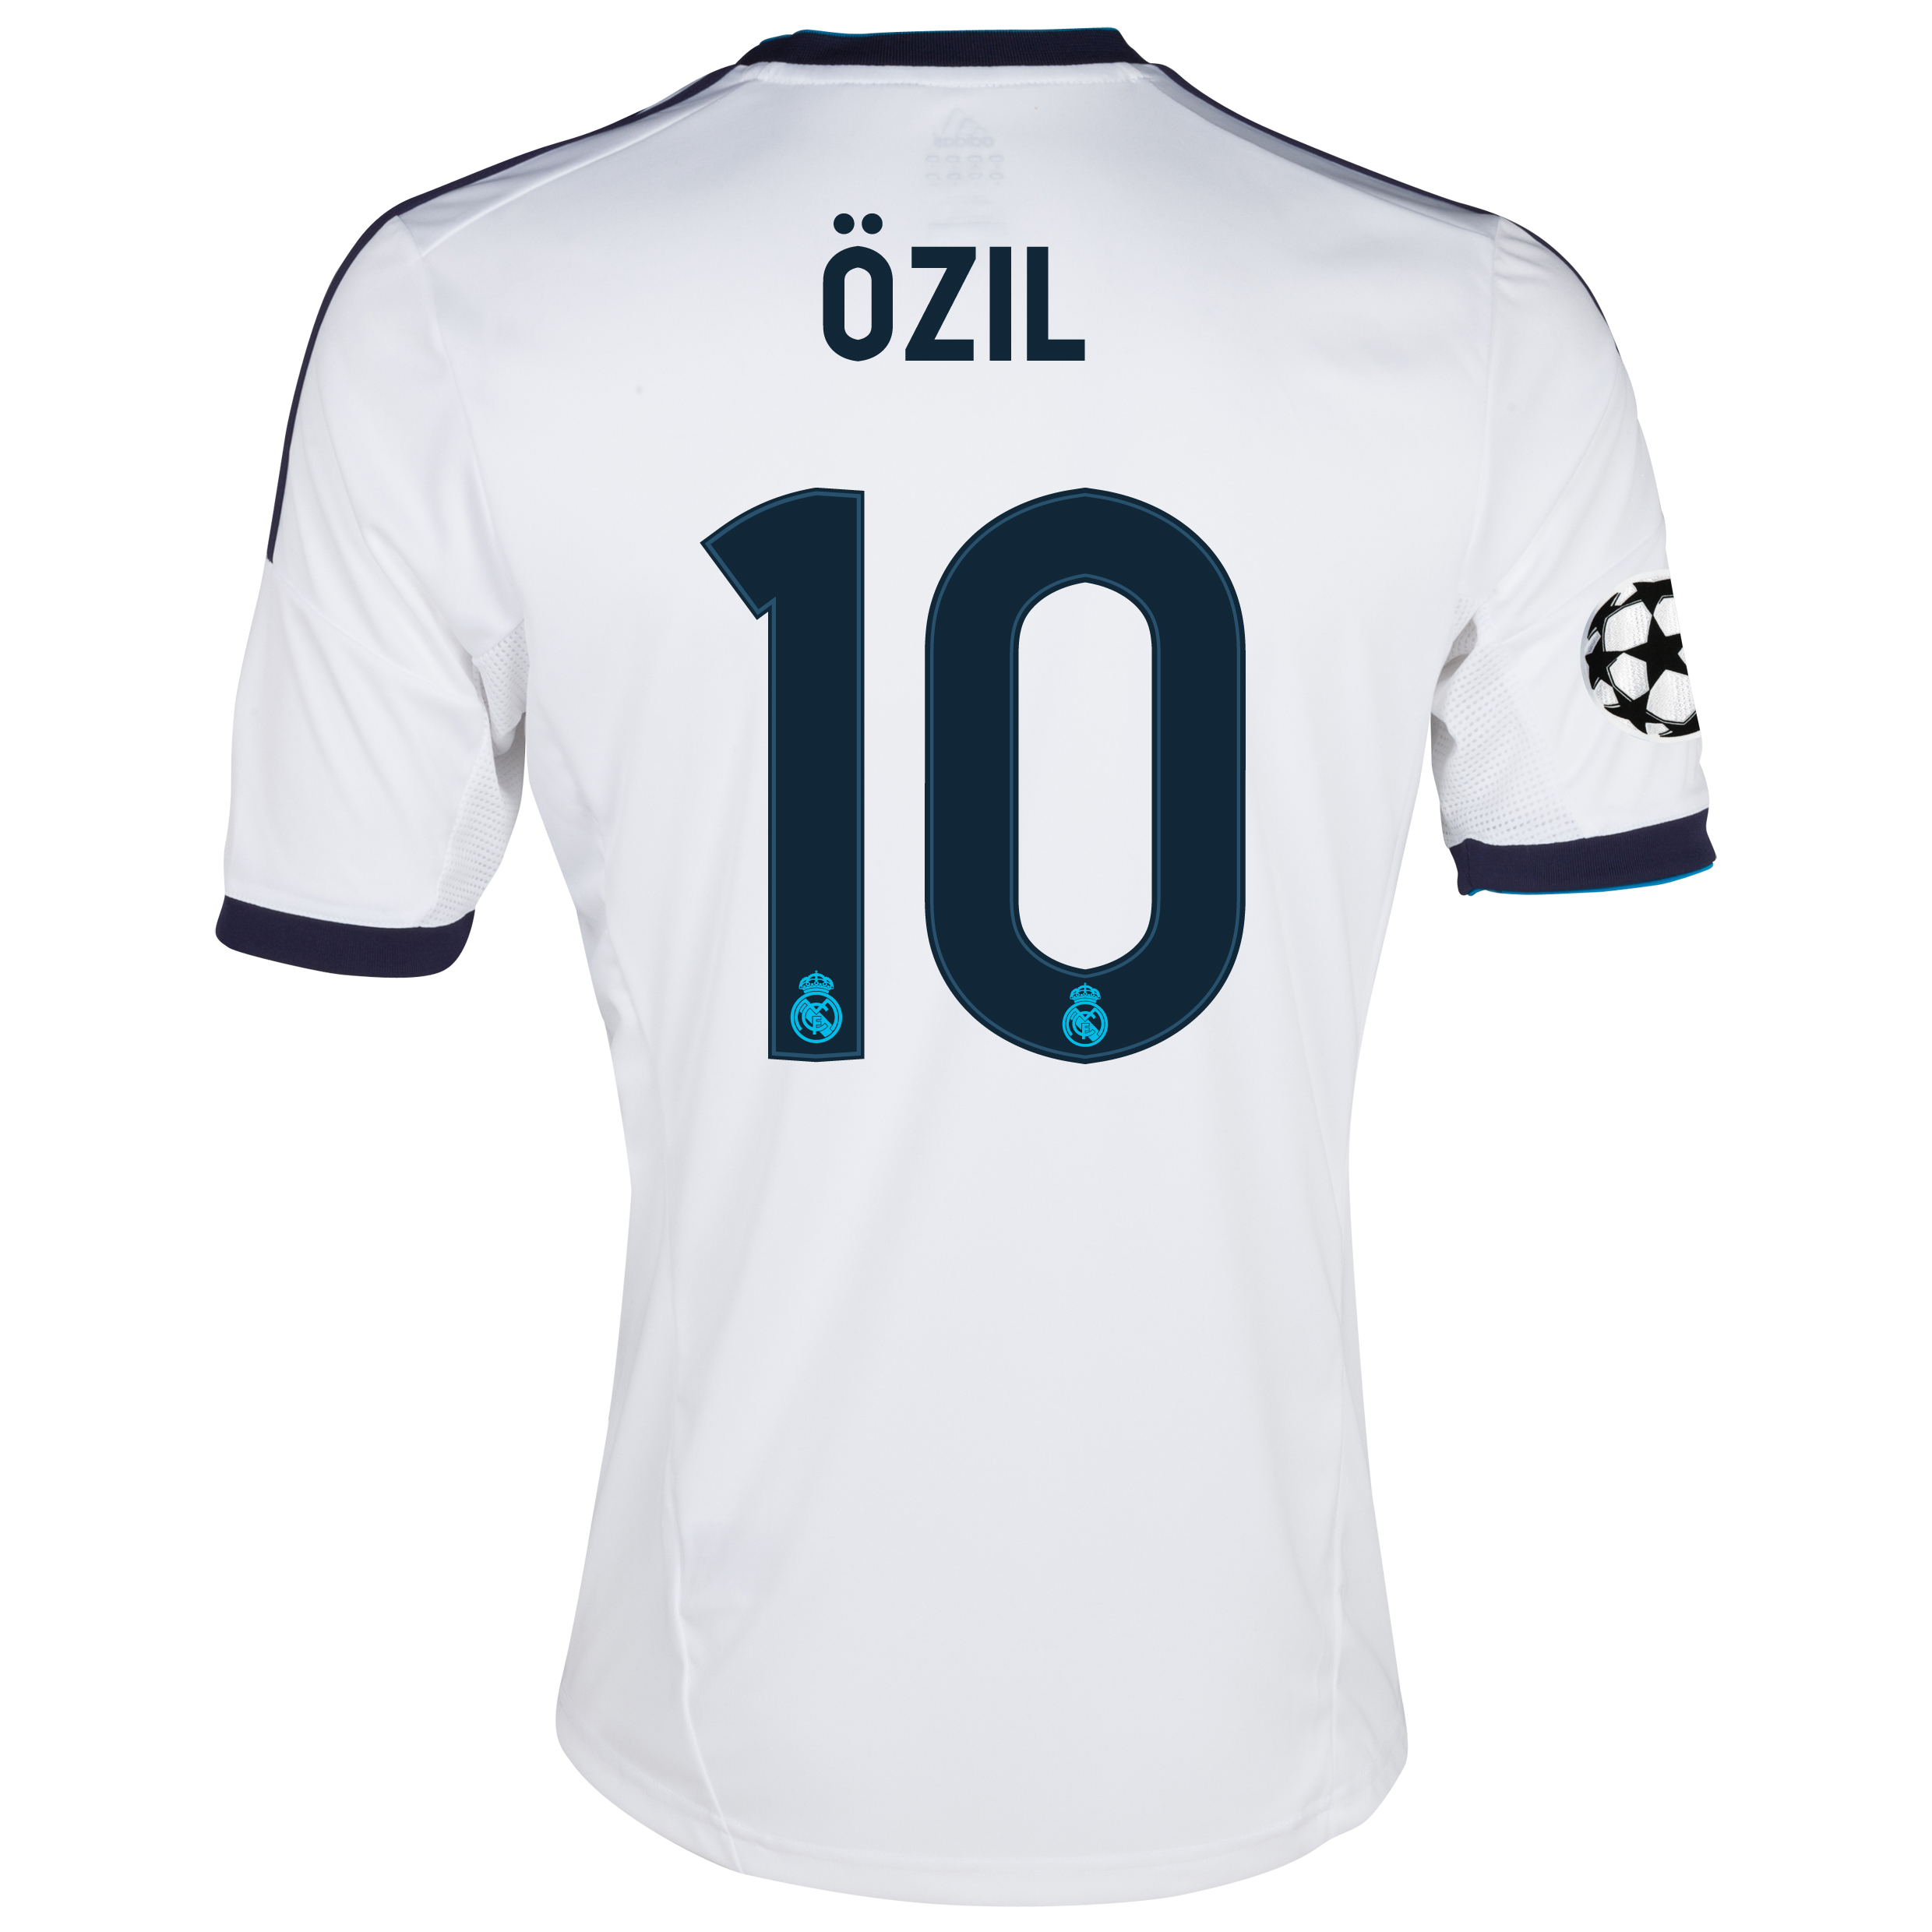 Real Madrid UEFA Champions League Home Shirt 2012/13 - Youths with Özil 10 printing